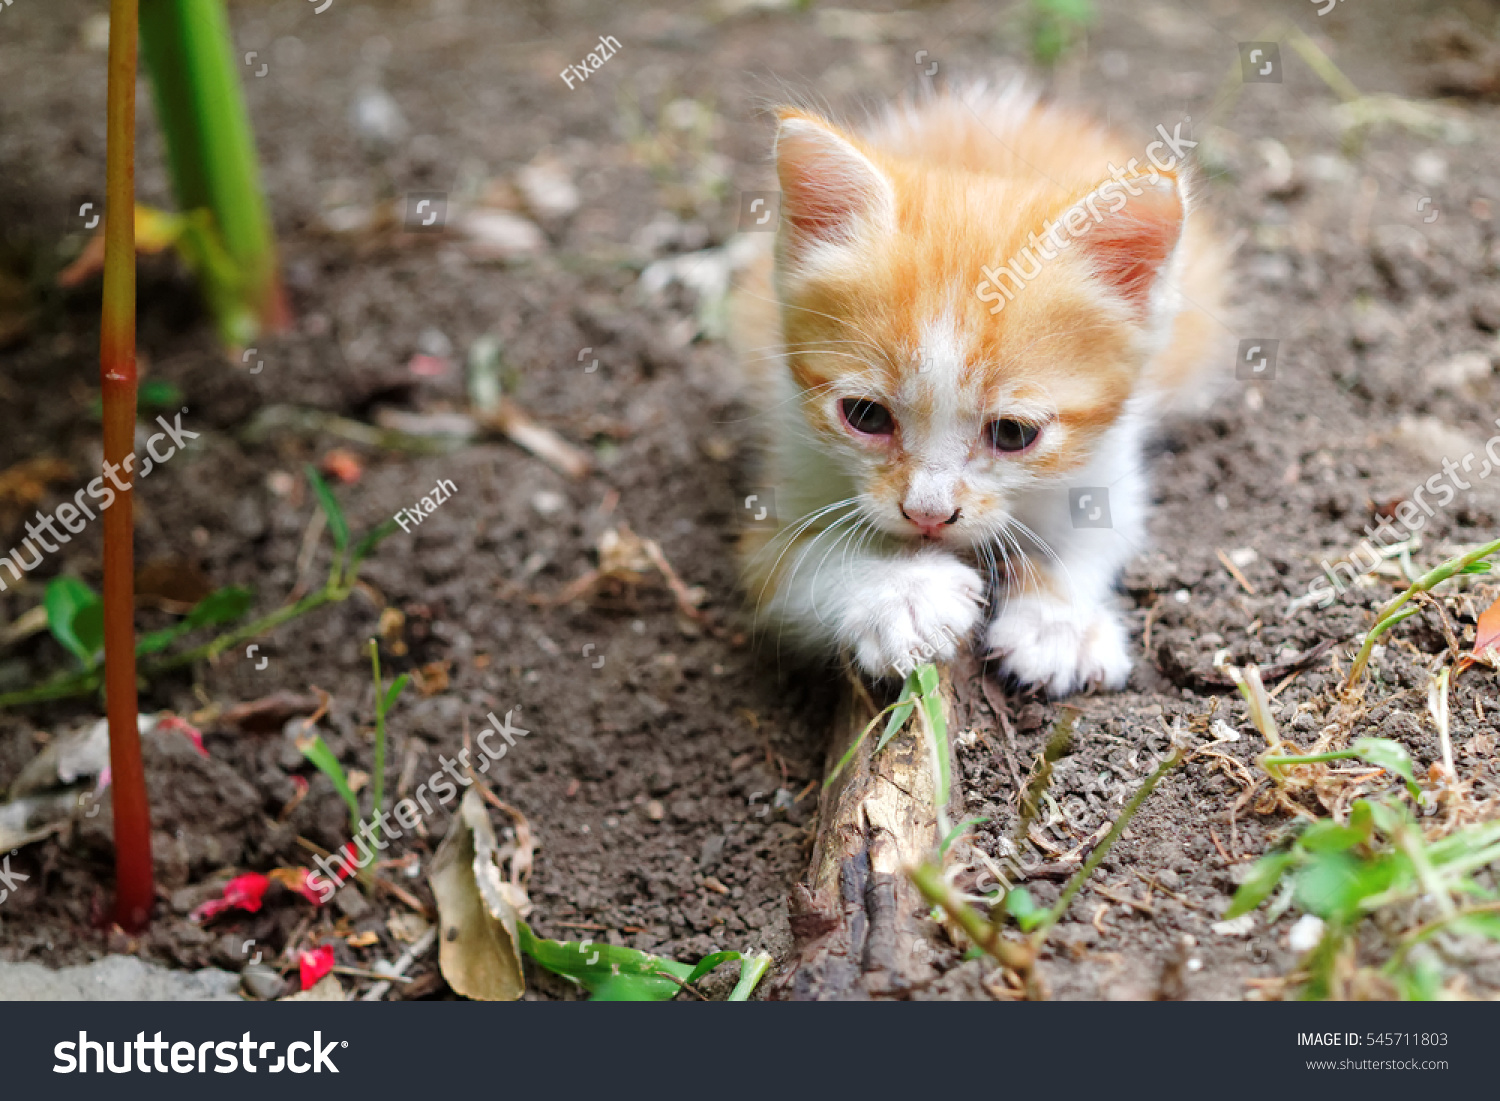 stock-photo-small-red-white-kitten-in-th